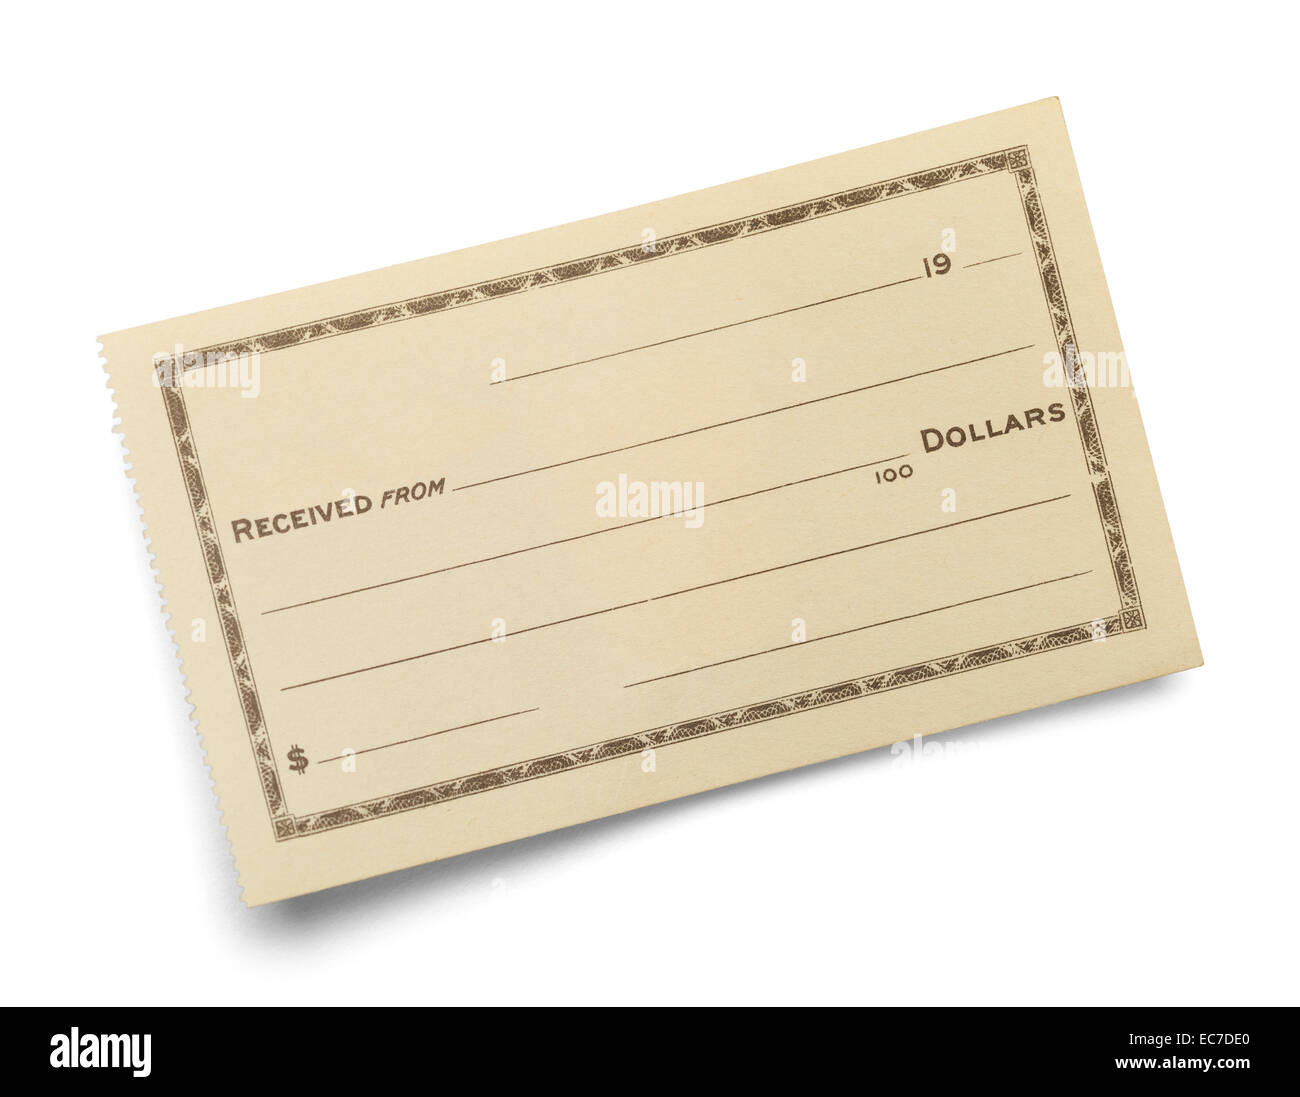 single blank receipt slip isolated on white background stock photo